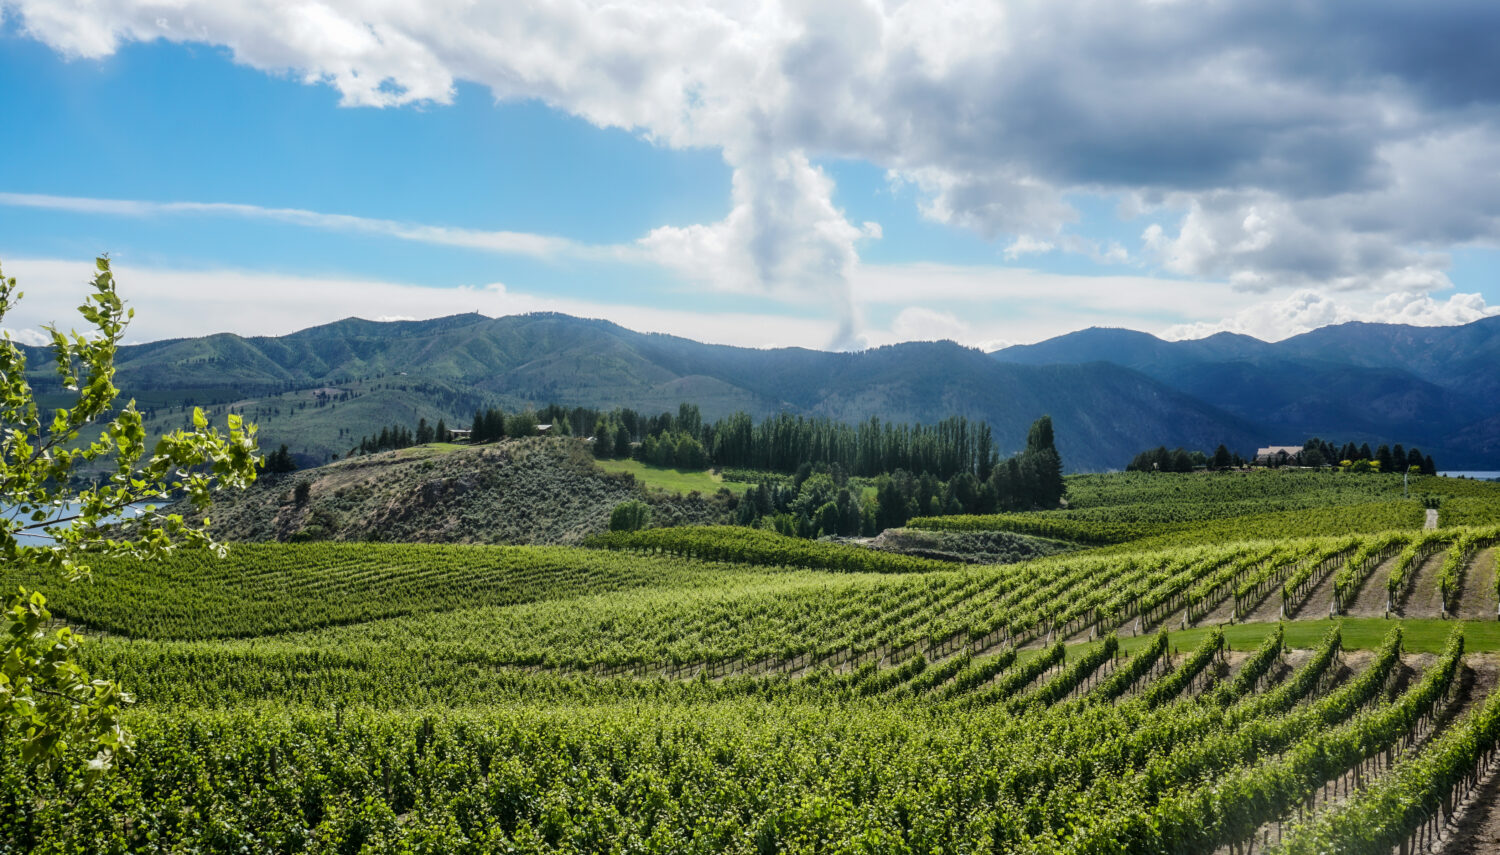 Bright green rows of grape vines with blue mountains in the distance and blue sky and clouds above.